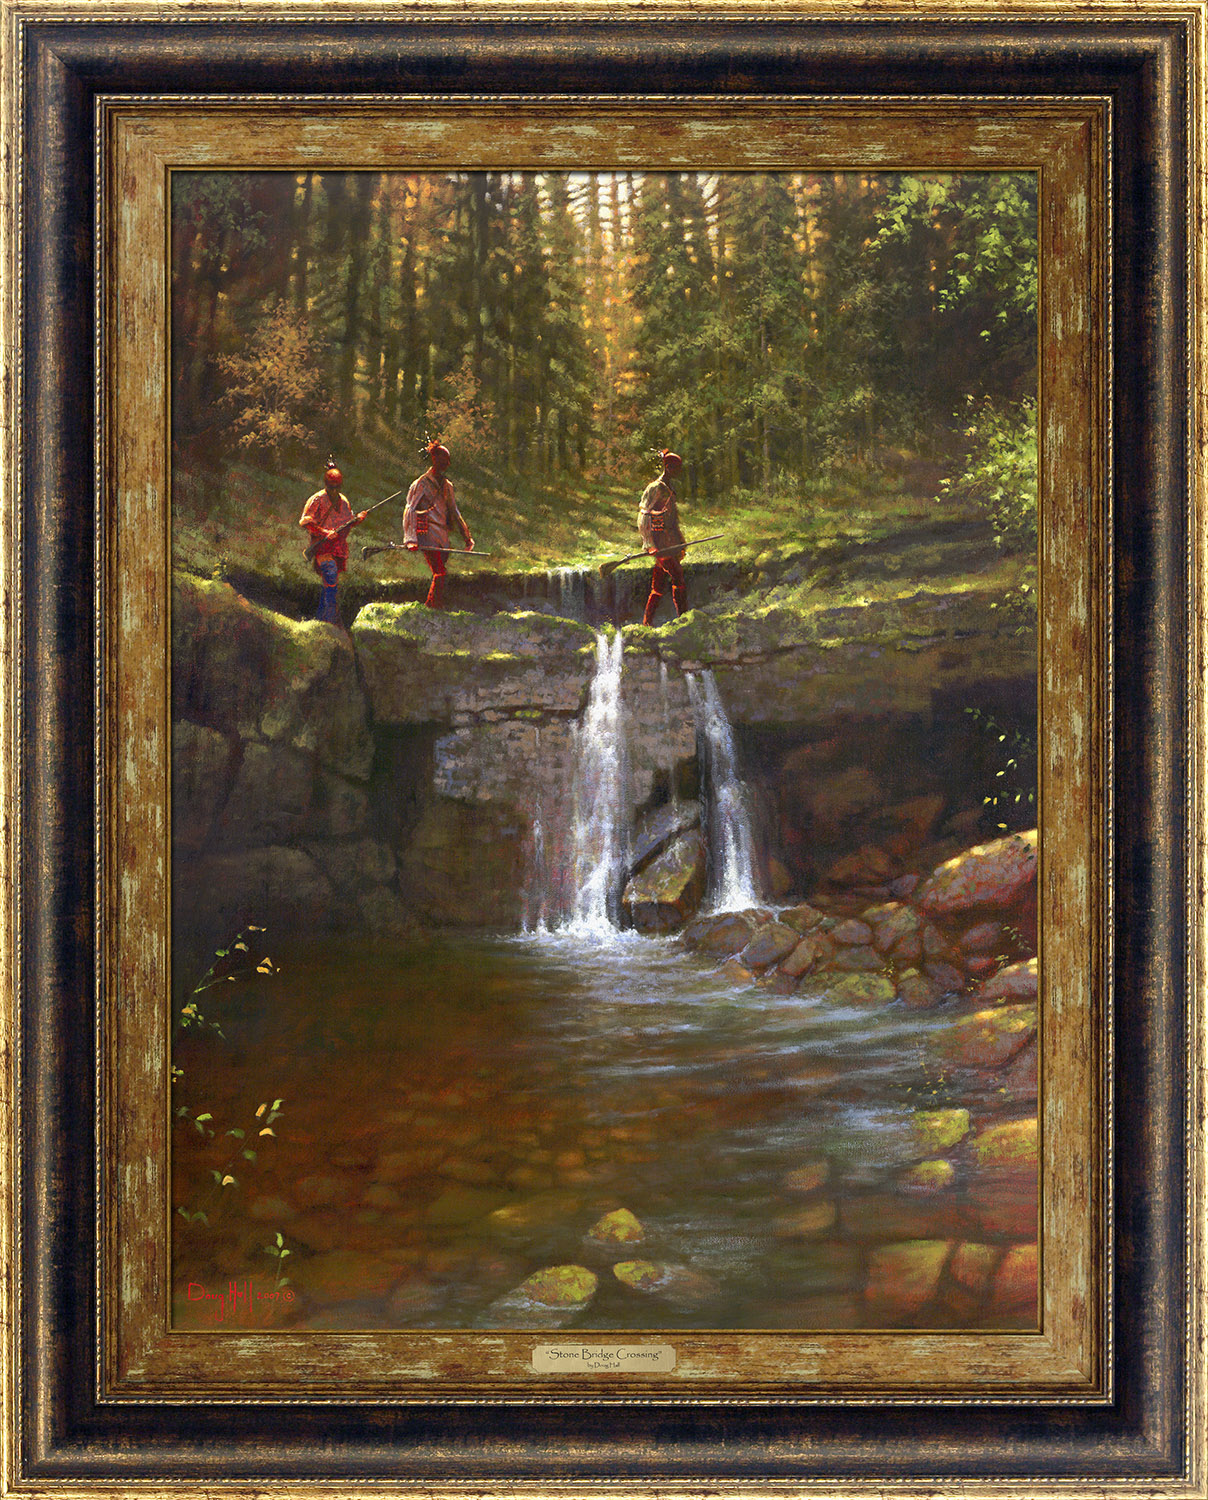 Stone Bridge Crossing by Doug Hall | Giclée